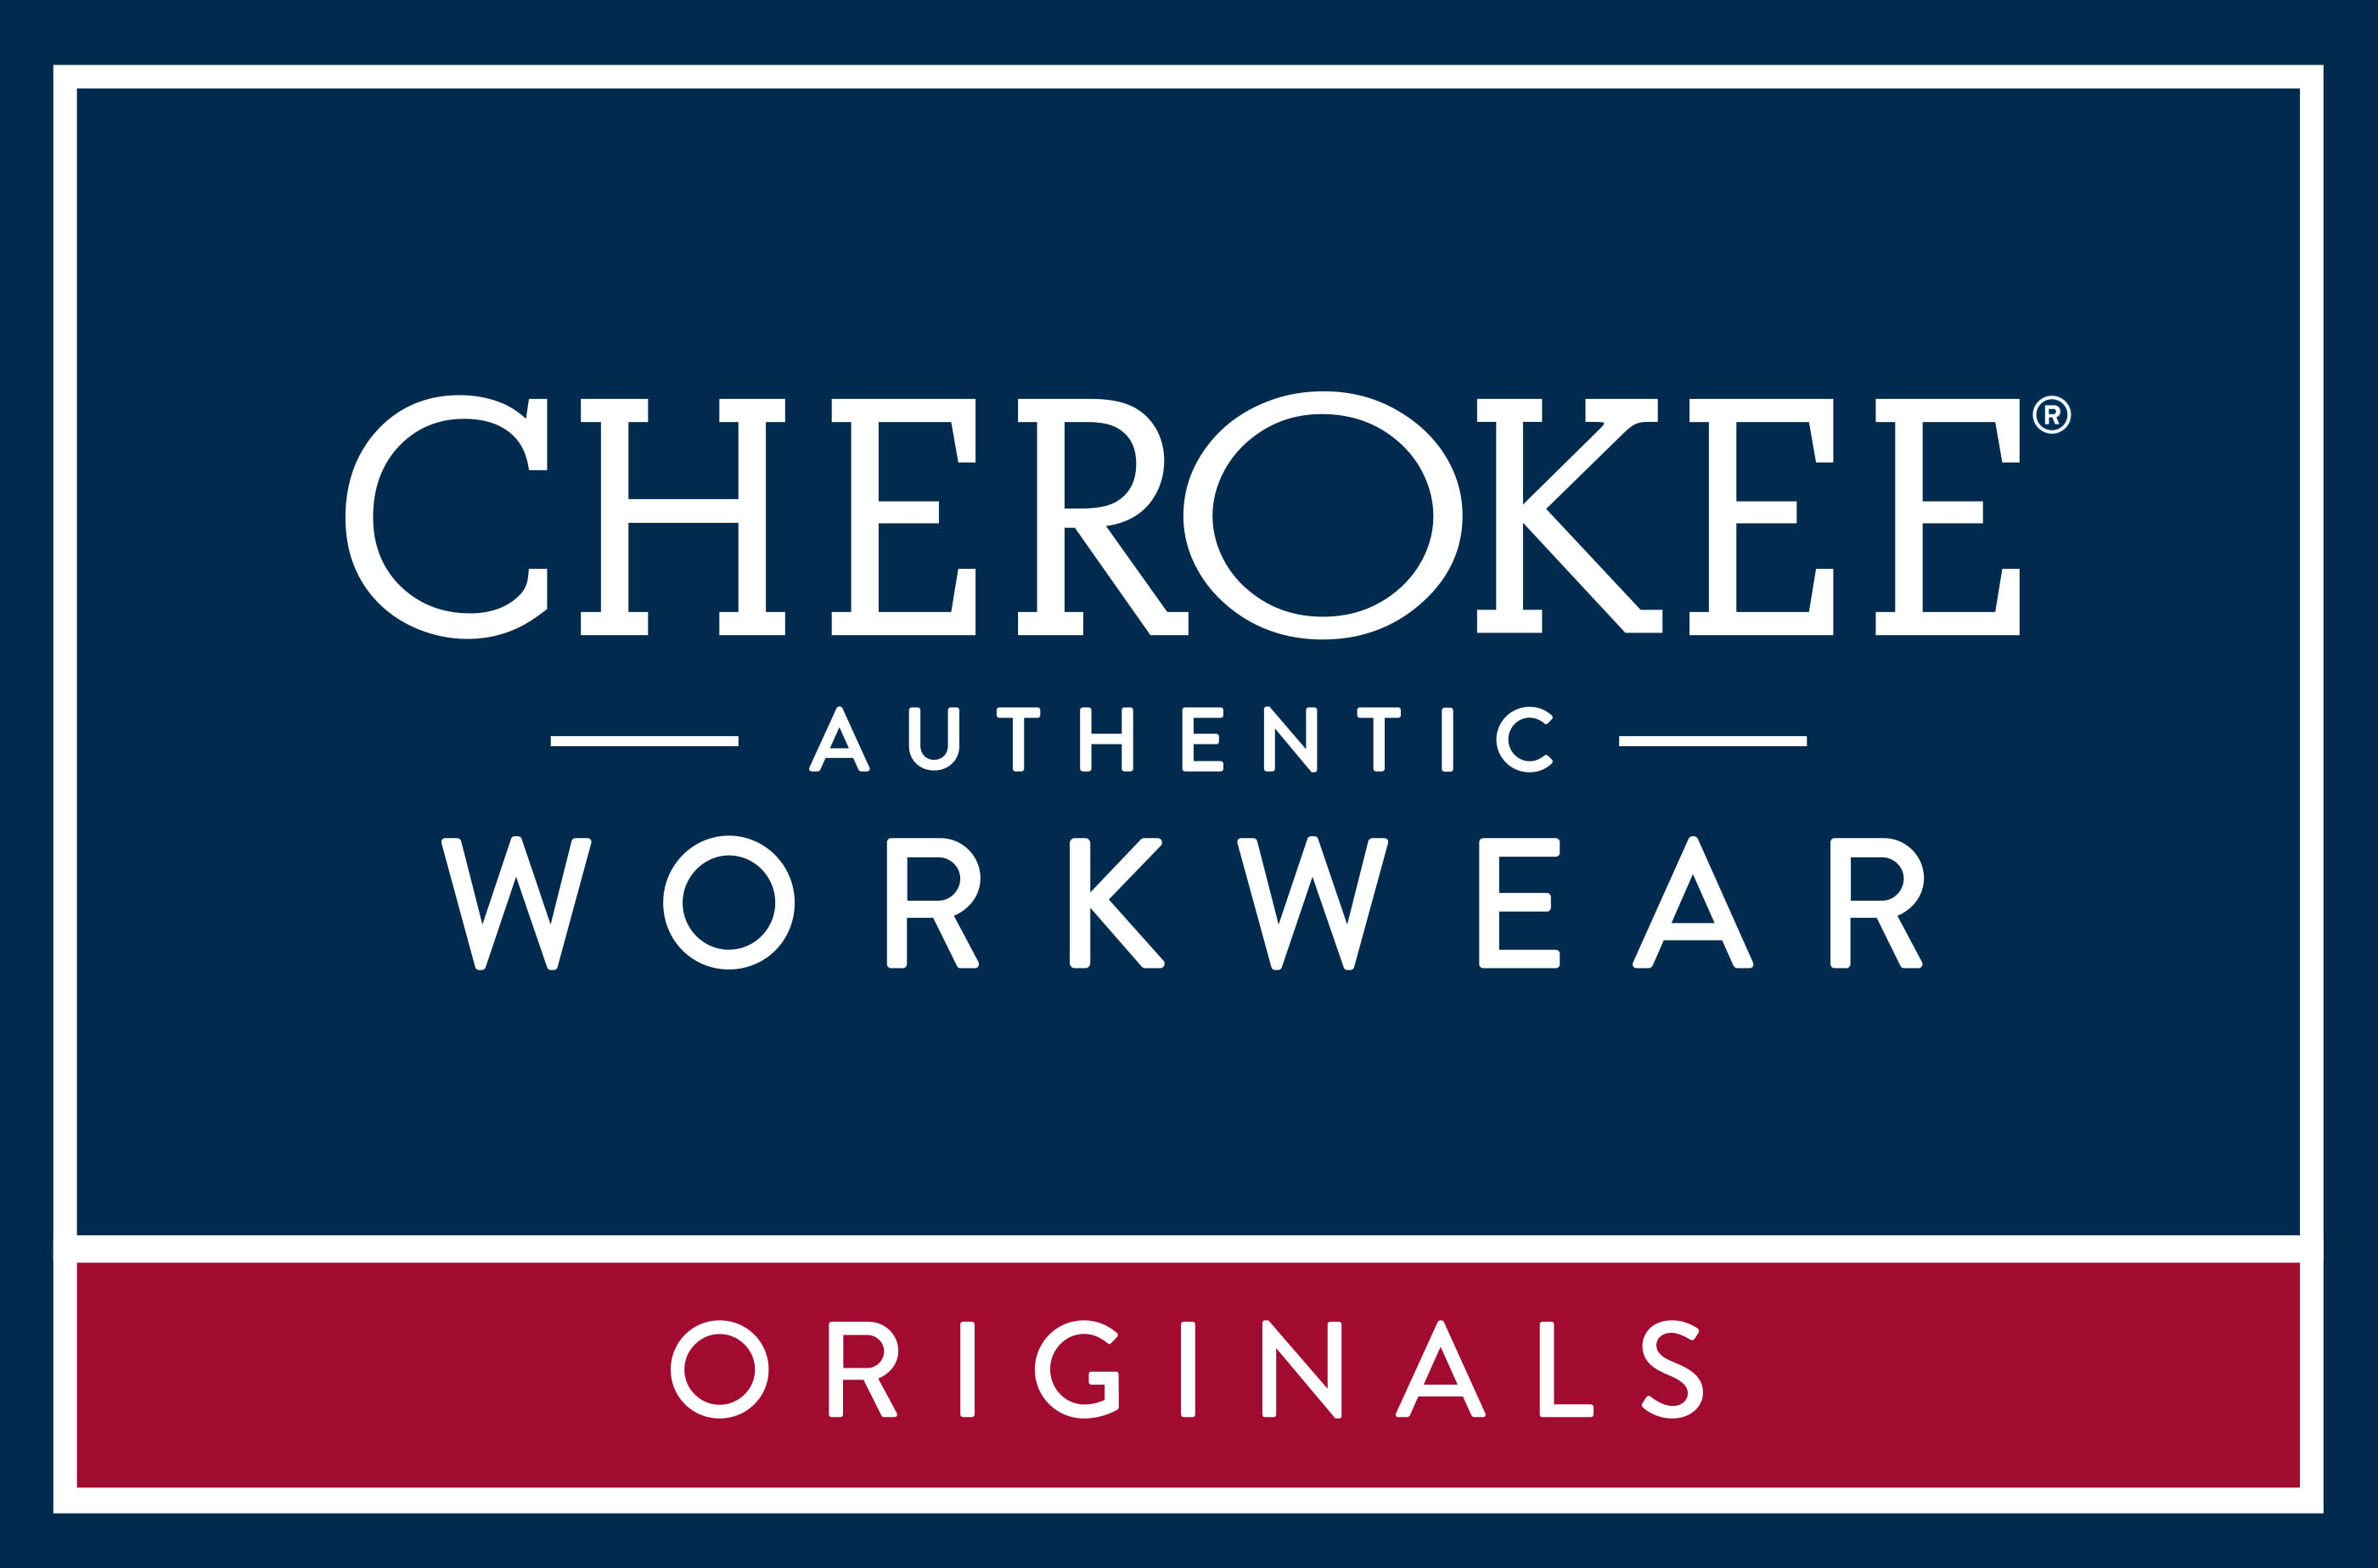 cherokee-workwear-originals-logo.jpg